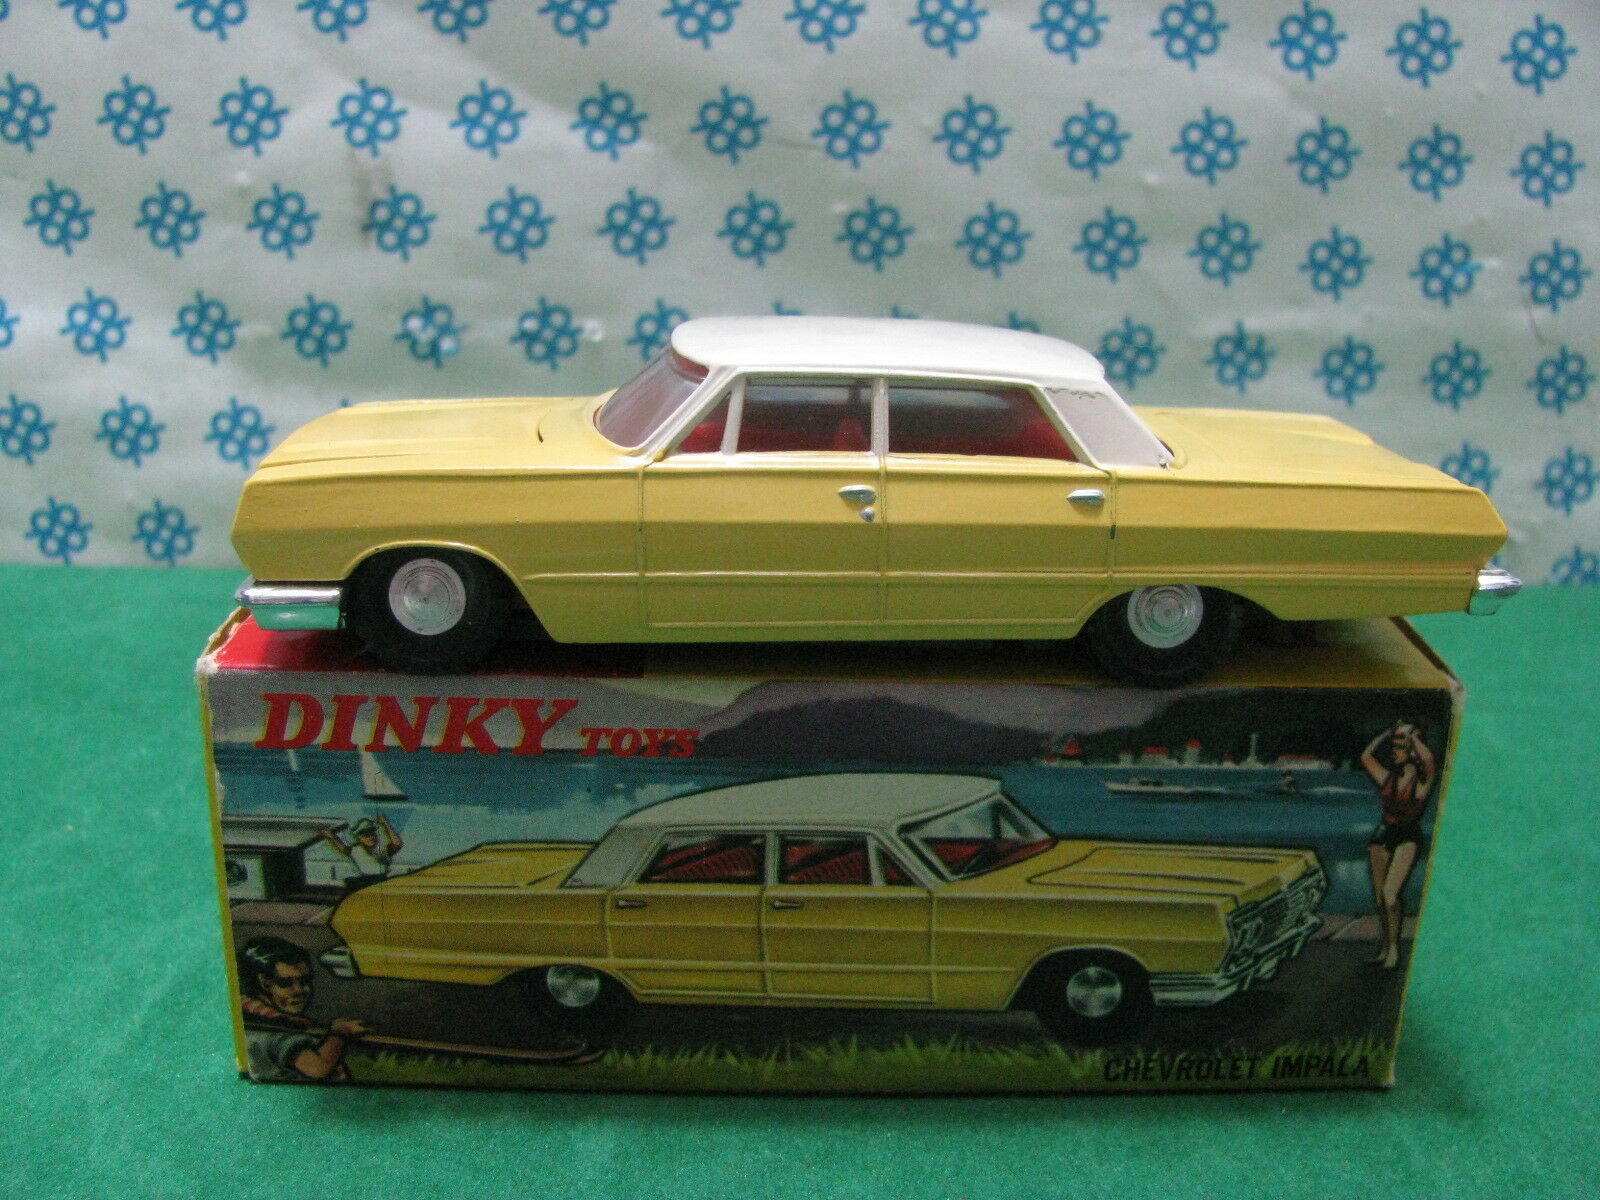 Vintage - Hong Kong Dinky Toys 57 003 - Chevrolet Impala - Mint Superbe